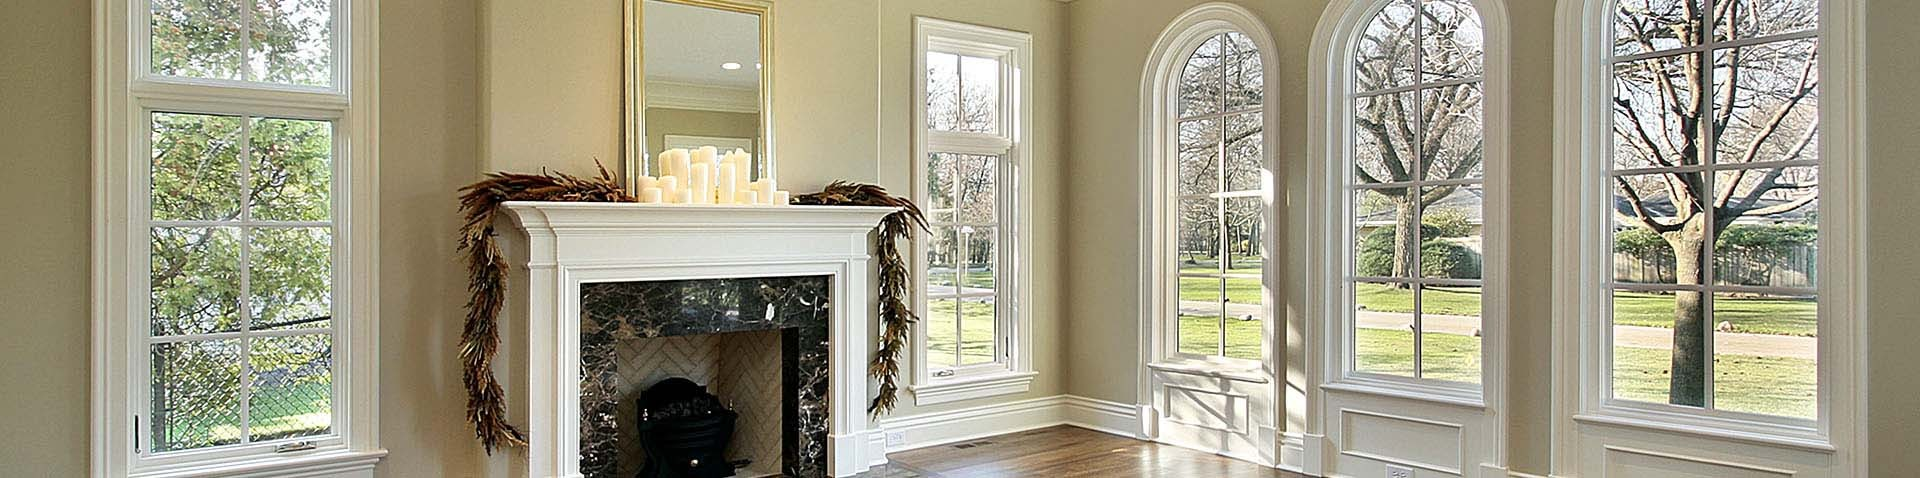 Interior window frames -  Interior Windows With White Frames Banner